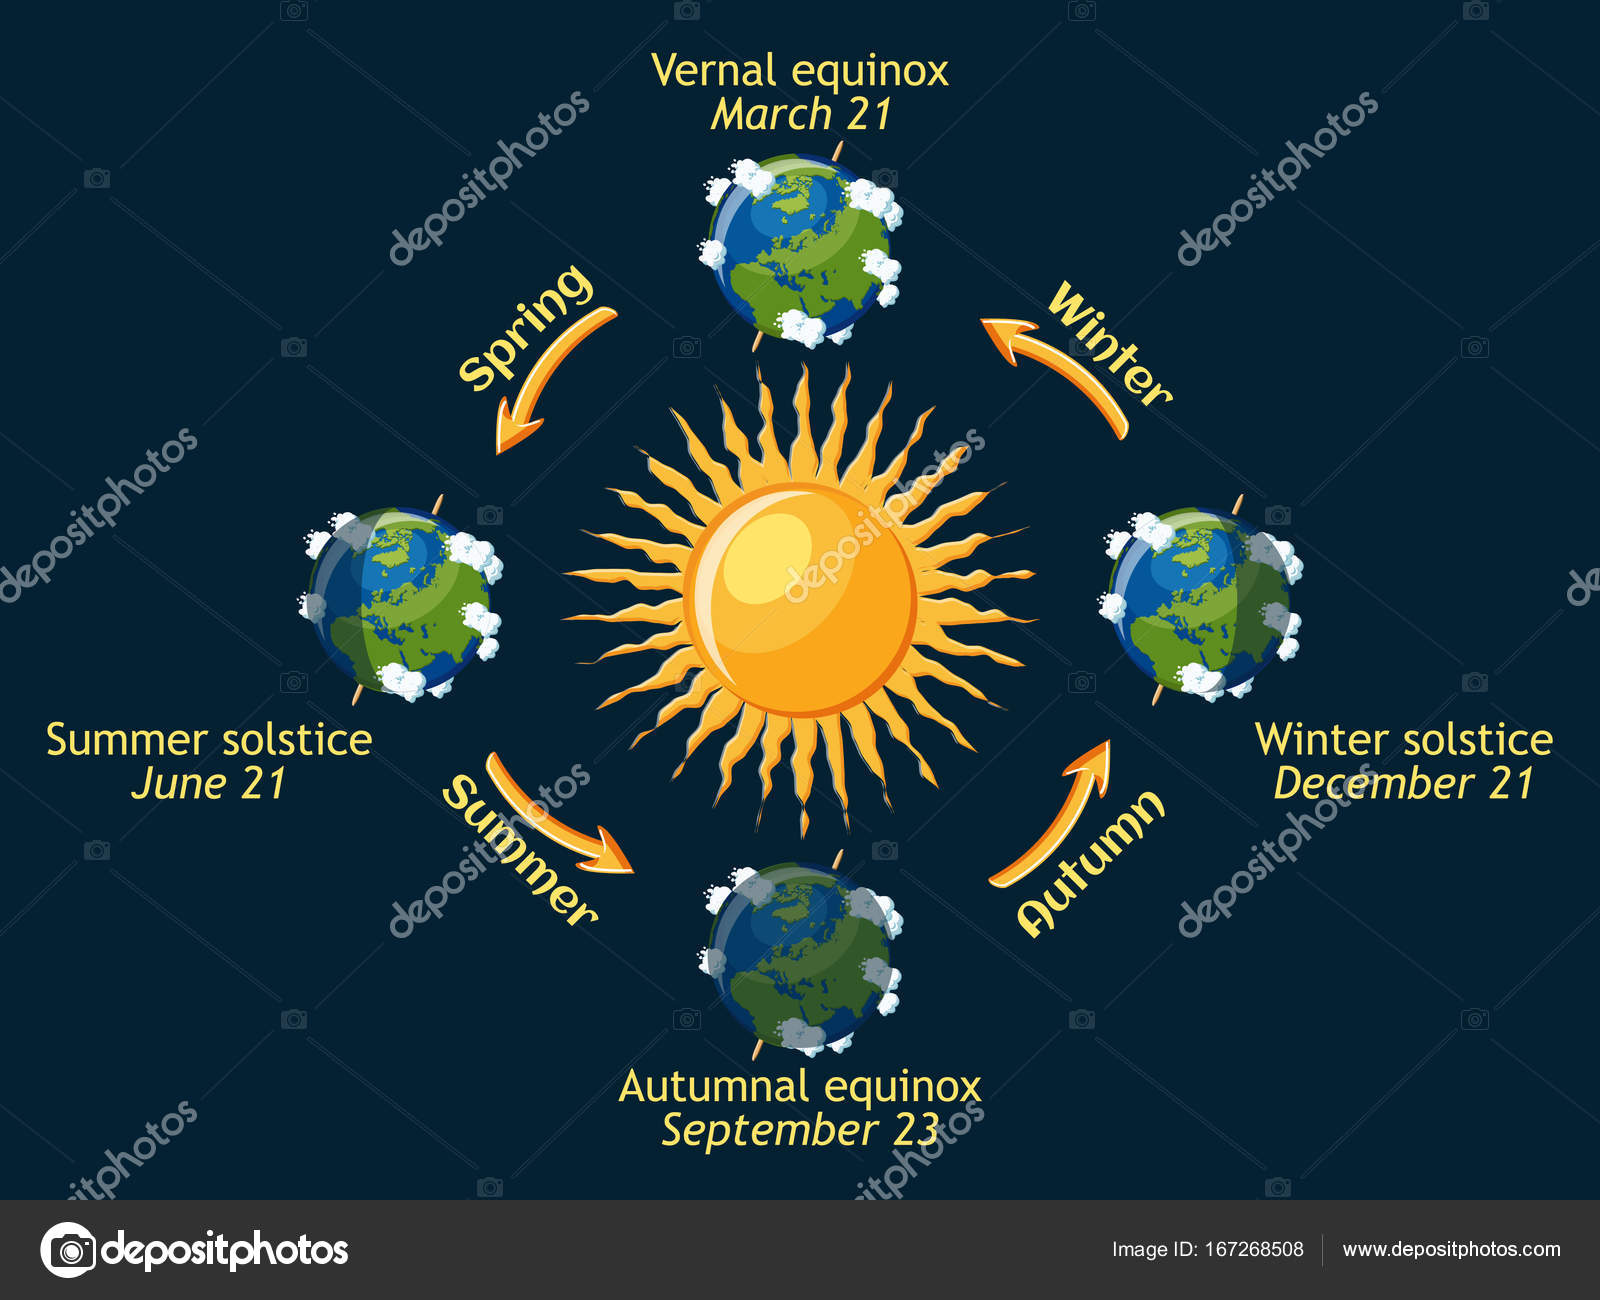 Cycle of earth seasons of the year autumnal and vernal equinox cycle of earth seasons of the year autumnal and vernal equinox summer and winter solstice planet earth orbit around the sun ccuart Gallery